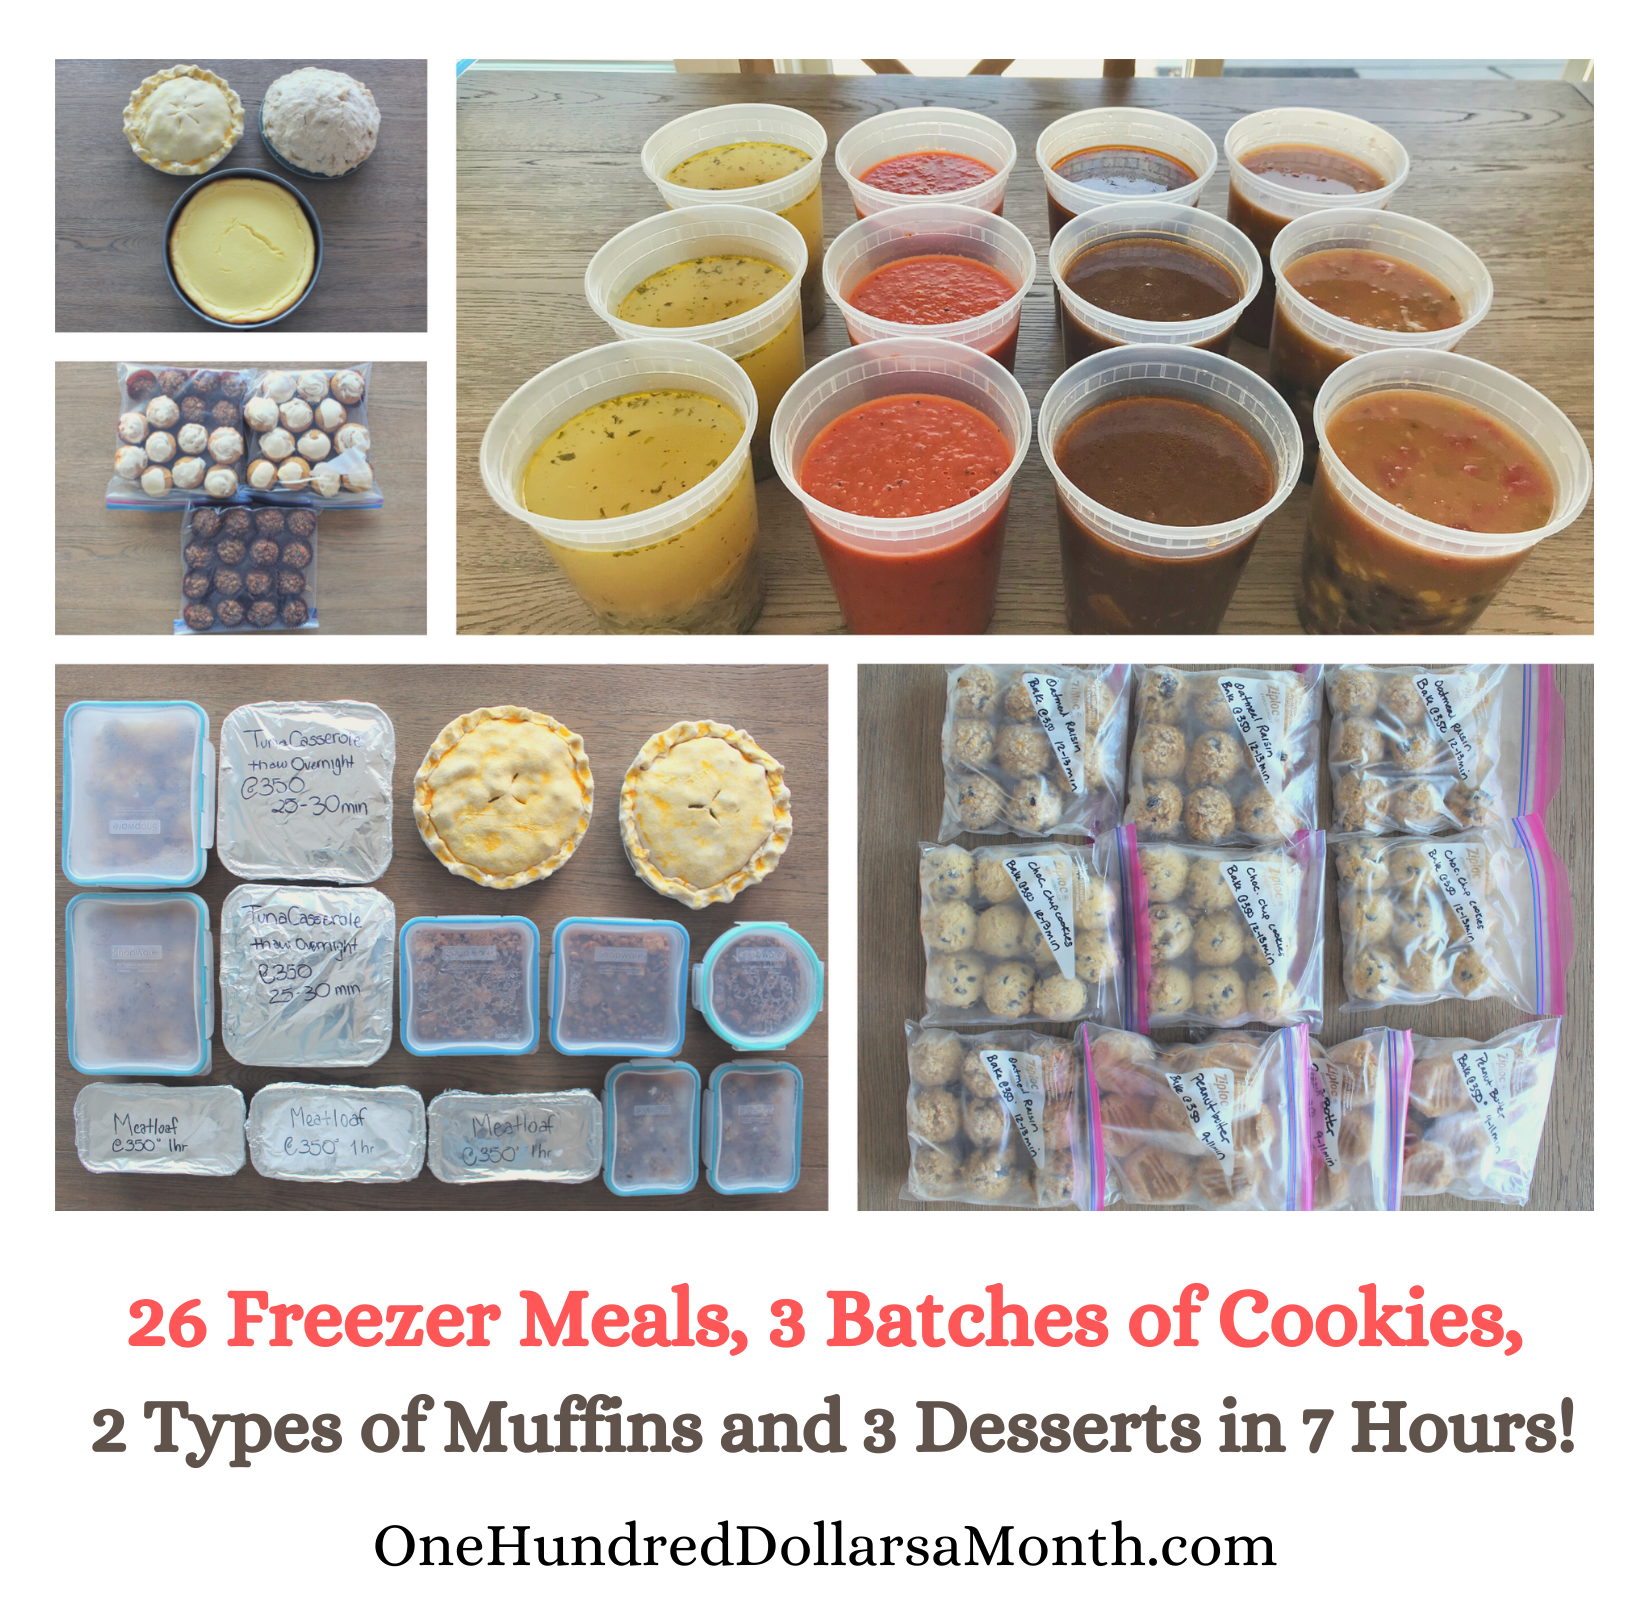 26 Freezer Meals Plus 3 Batches of Cookies, 2 Types of Muffins and 3 Desserts in 7 Hours